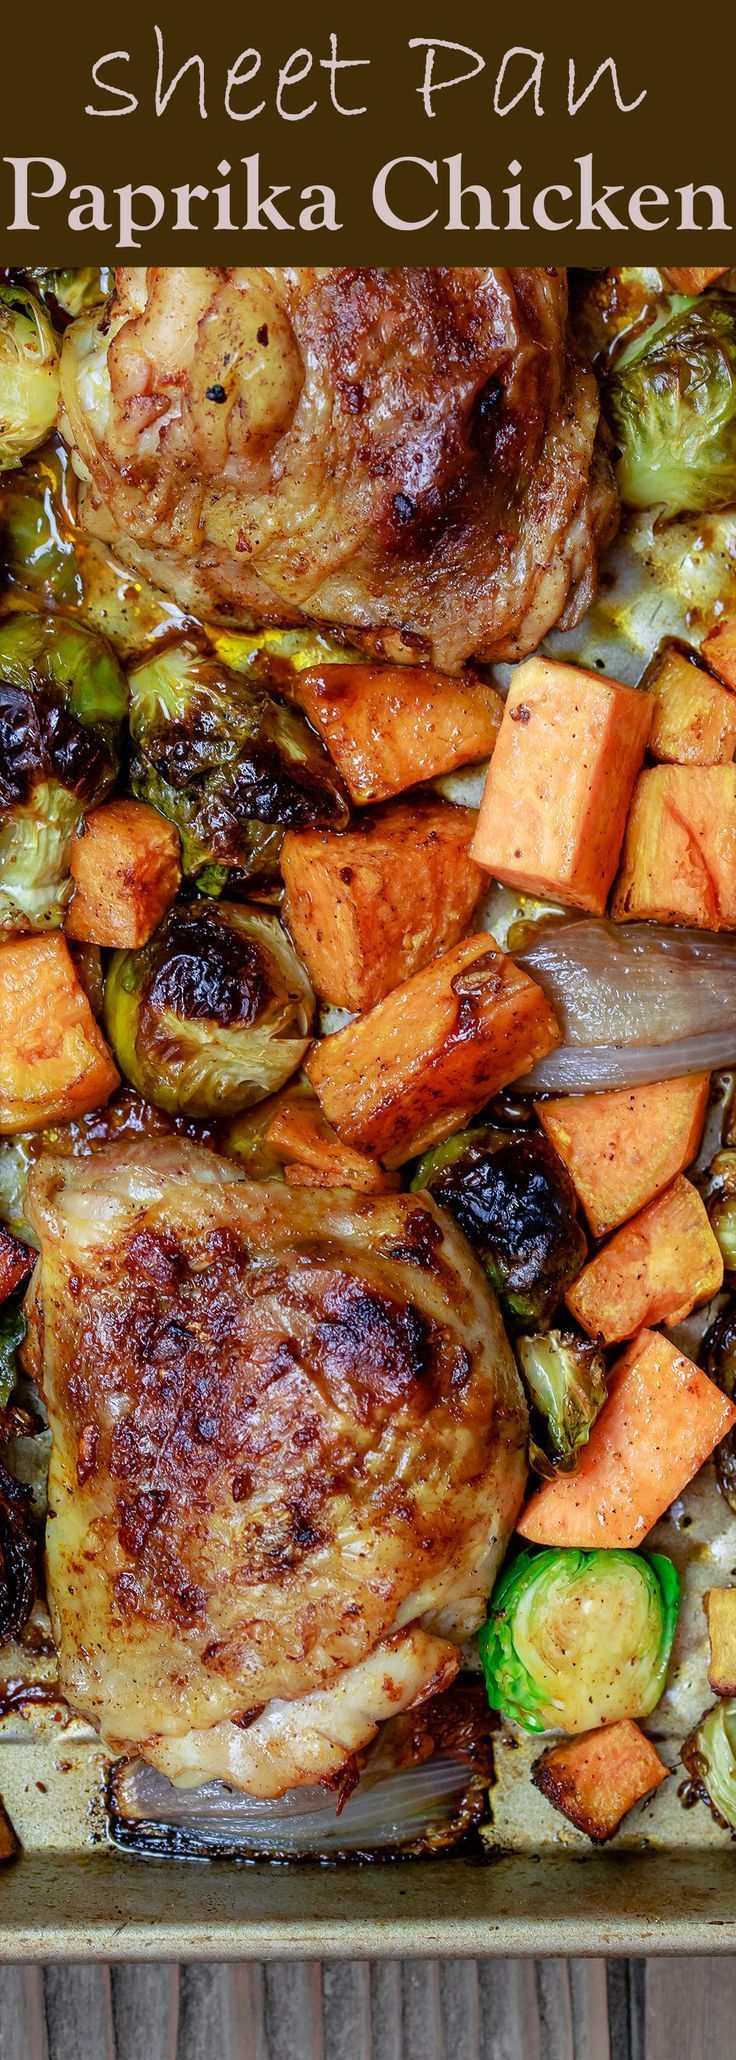 Sheet Pan Paprika Chicken and Vegetables